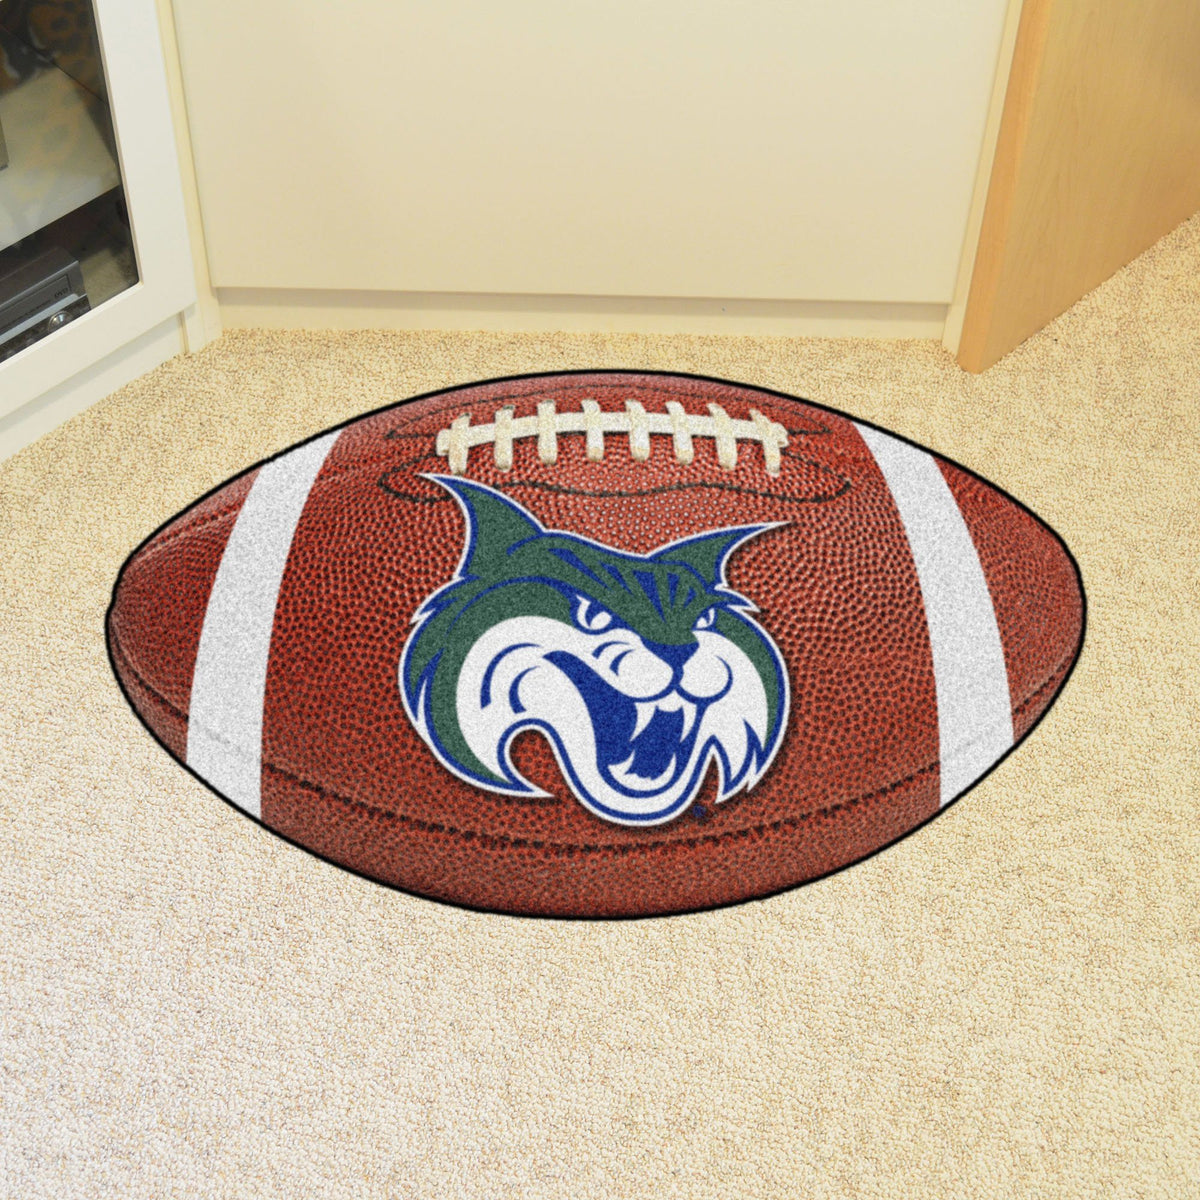 Collegiate - Football Mat: A - K Collegiate Mats, Rectangular Mats, Football Mat, Collegiate, Home Fan Mats Georgia College